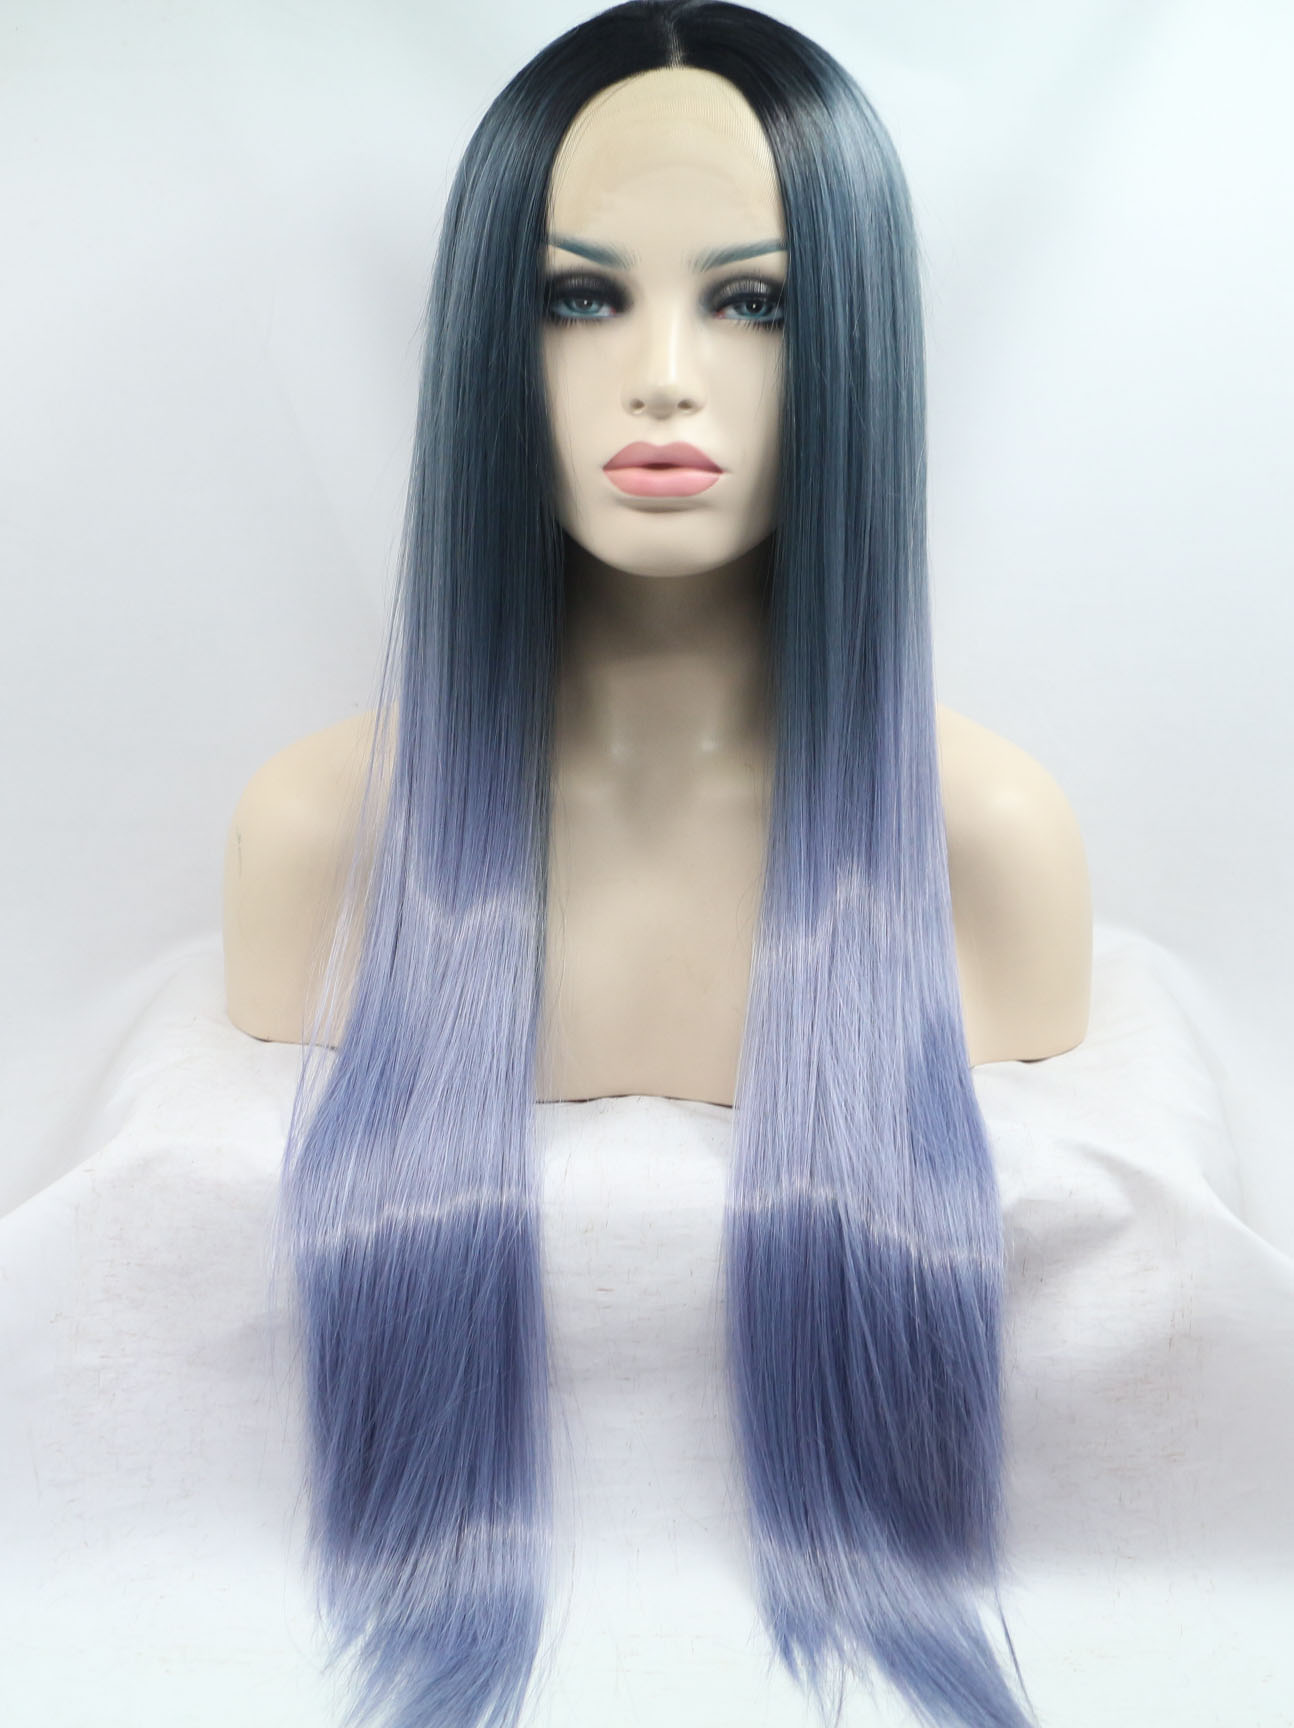 Designed Lace Front Colorful Fashion VivHair Wig VGW05112